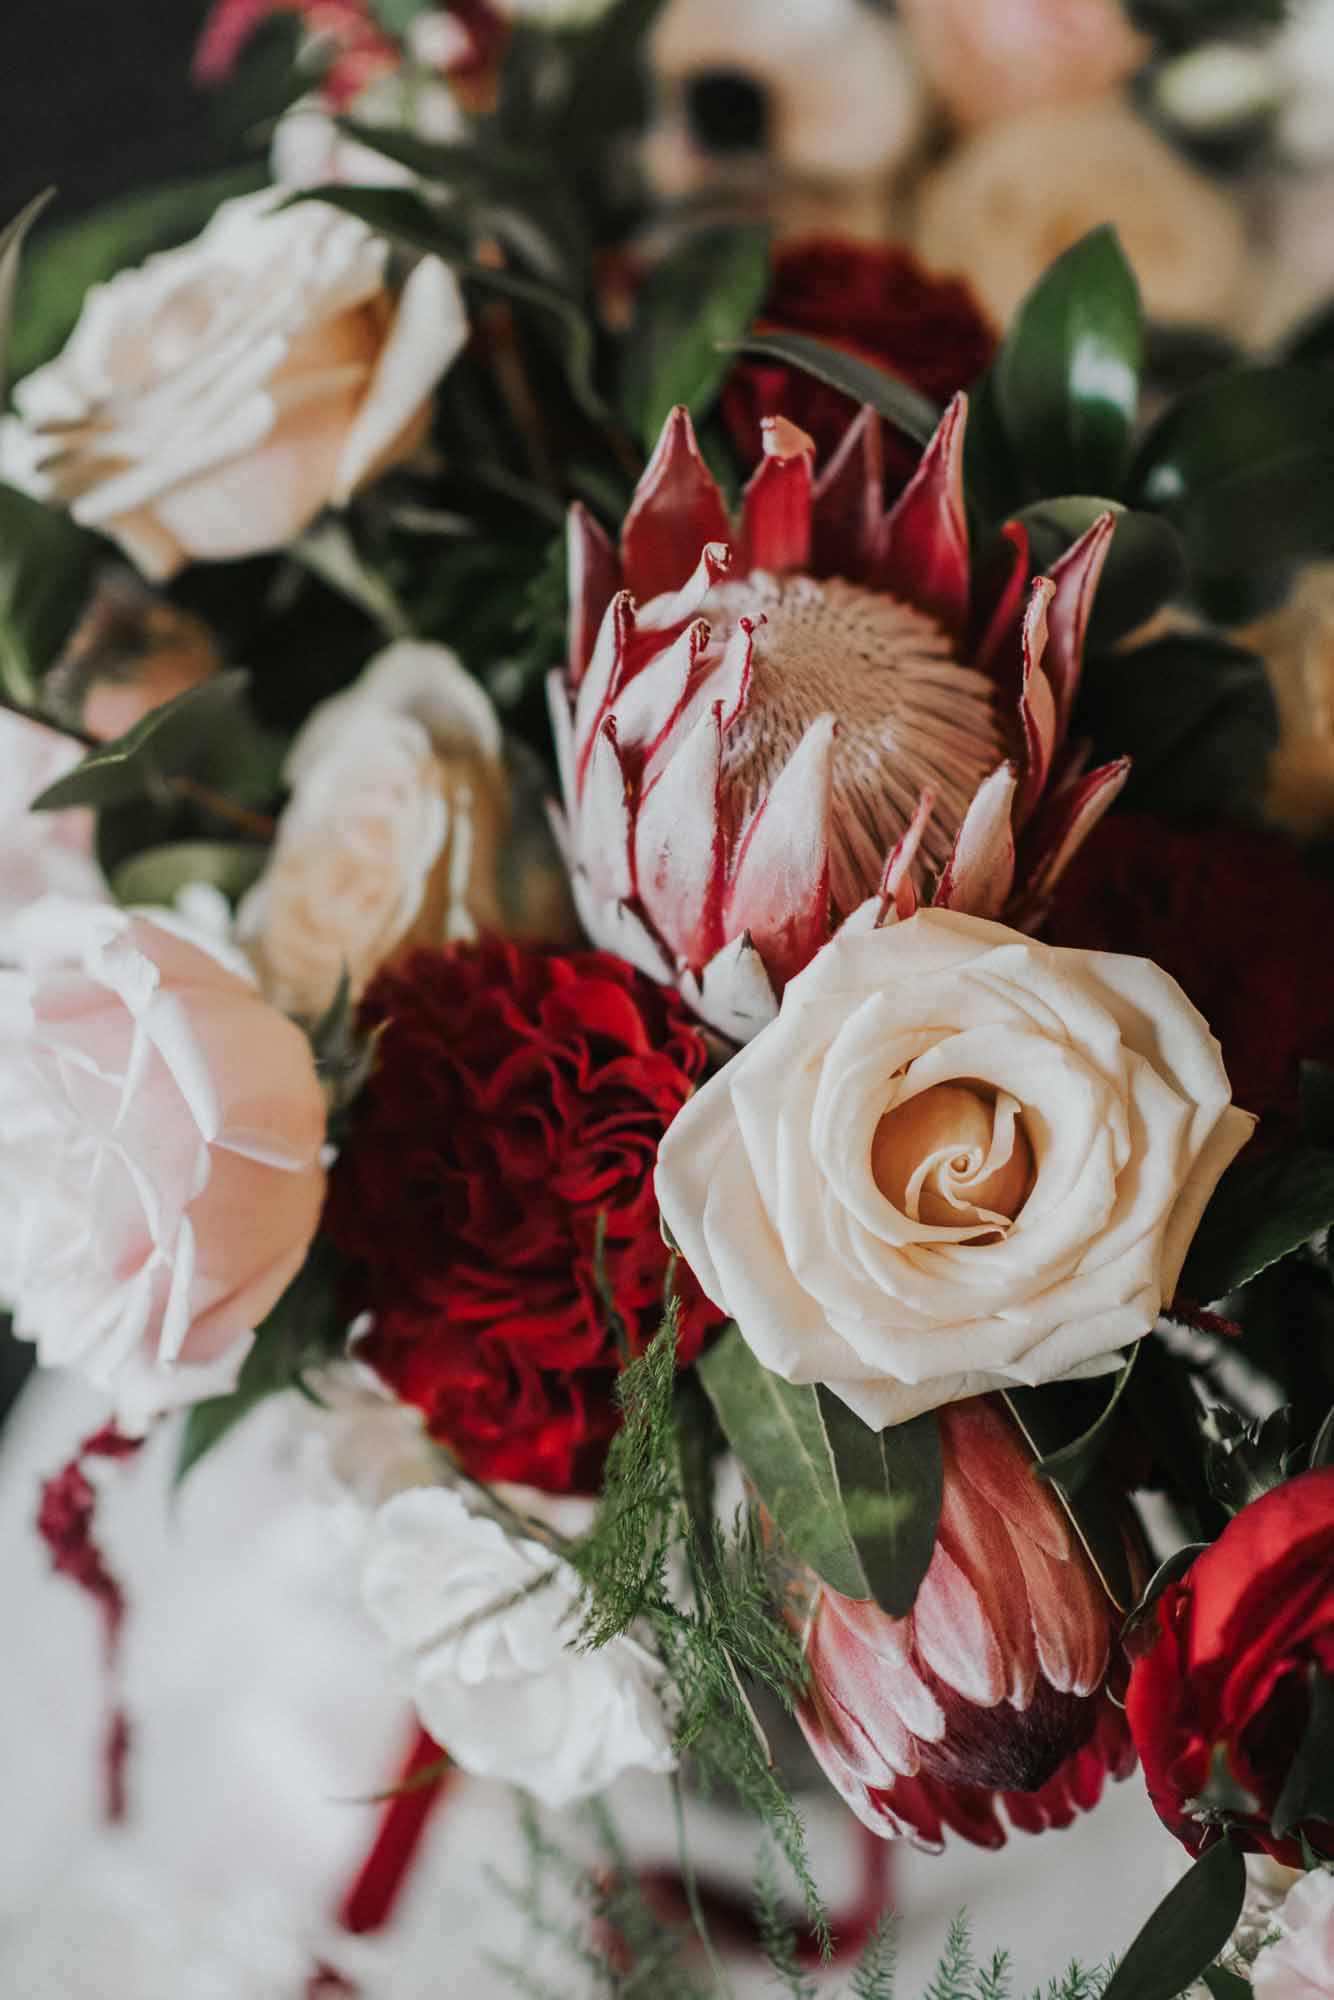 Close up of a cozy winter wedding bouquet with protea and roses